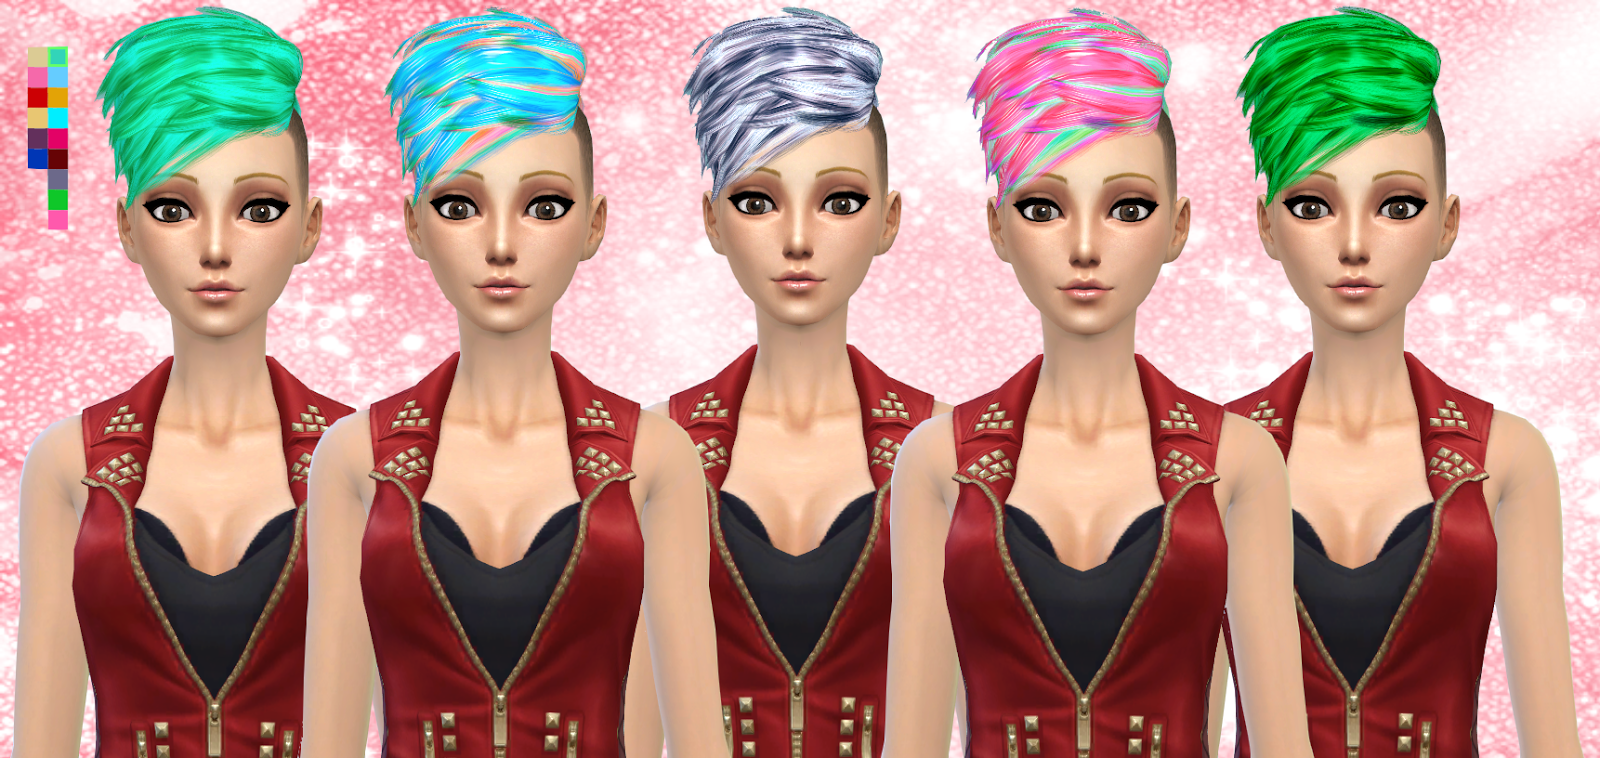 Neissys Half-Hawk Recolors at Darkiie Sims4